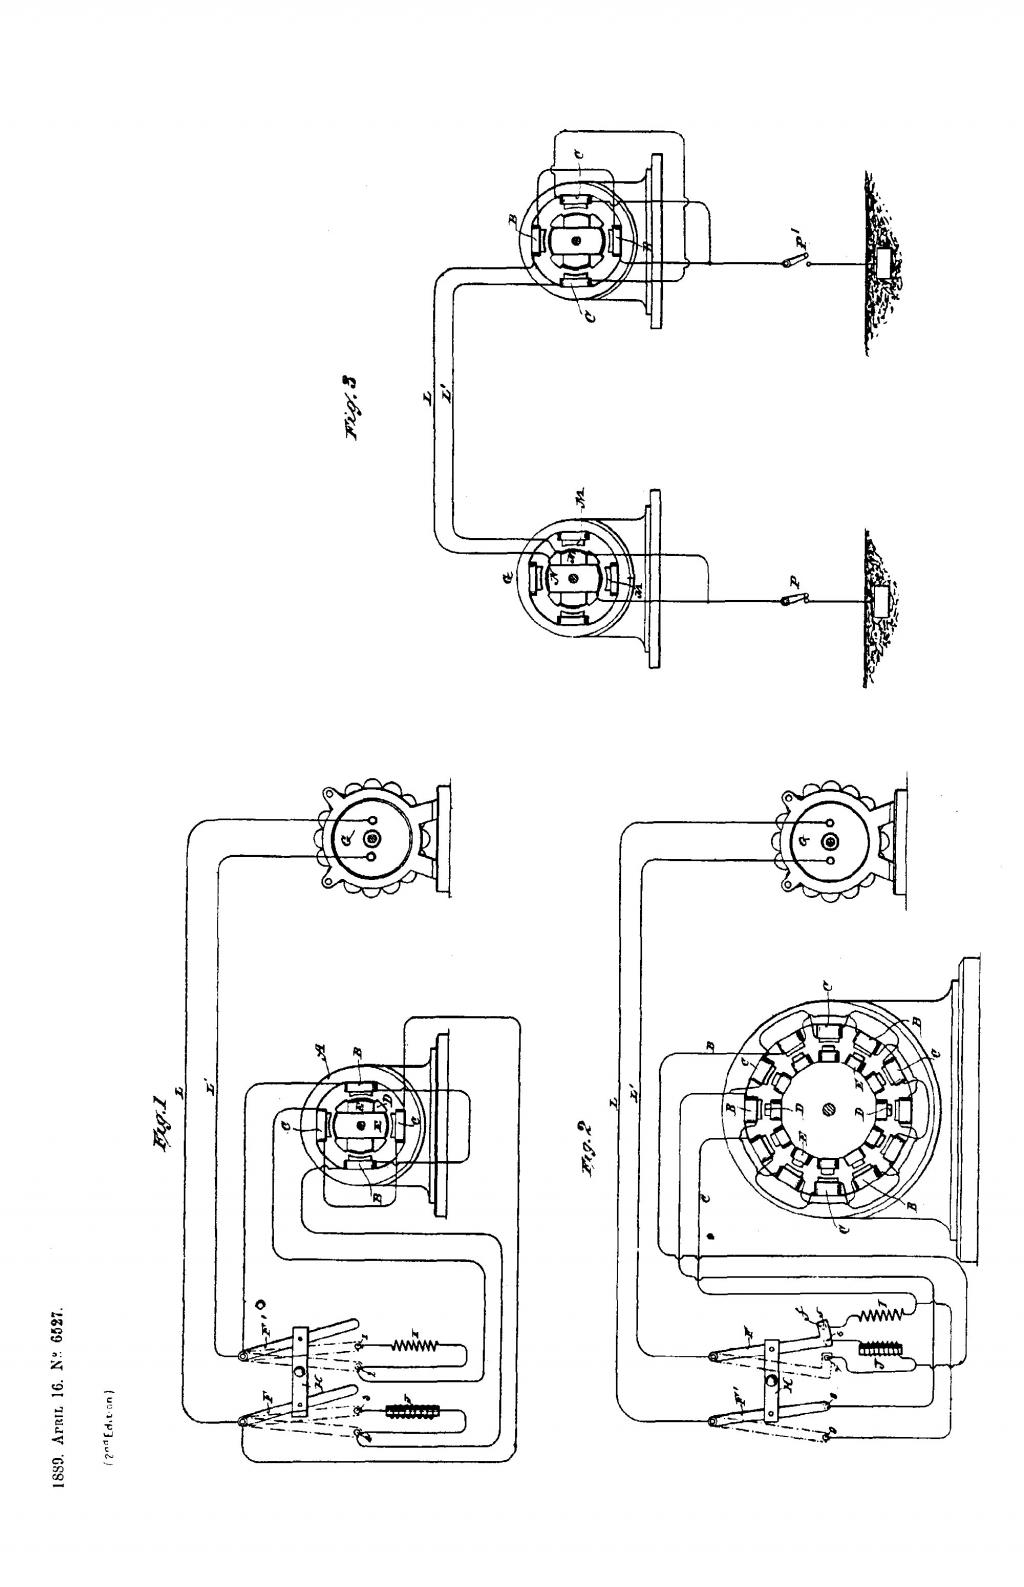 Nikola Tesla British Patent 6527 - Improvements relating to Electro-Motors - Image 1